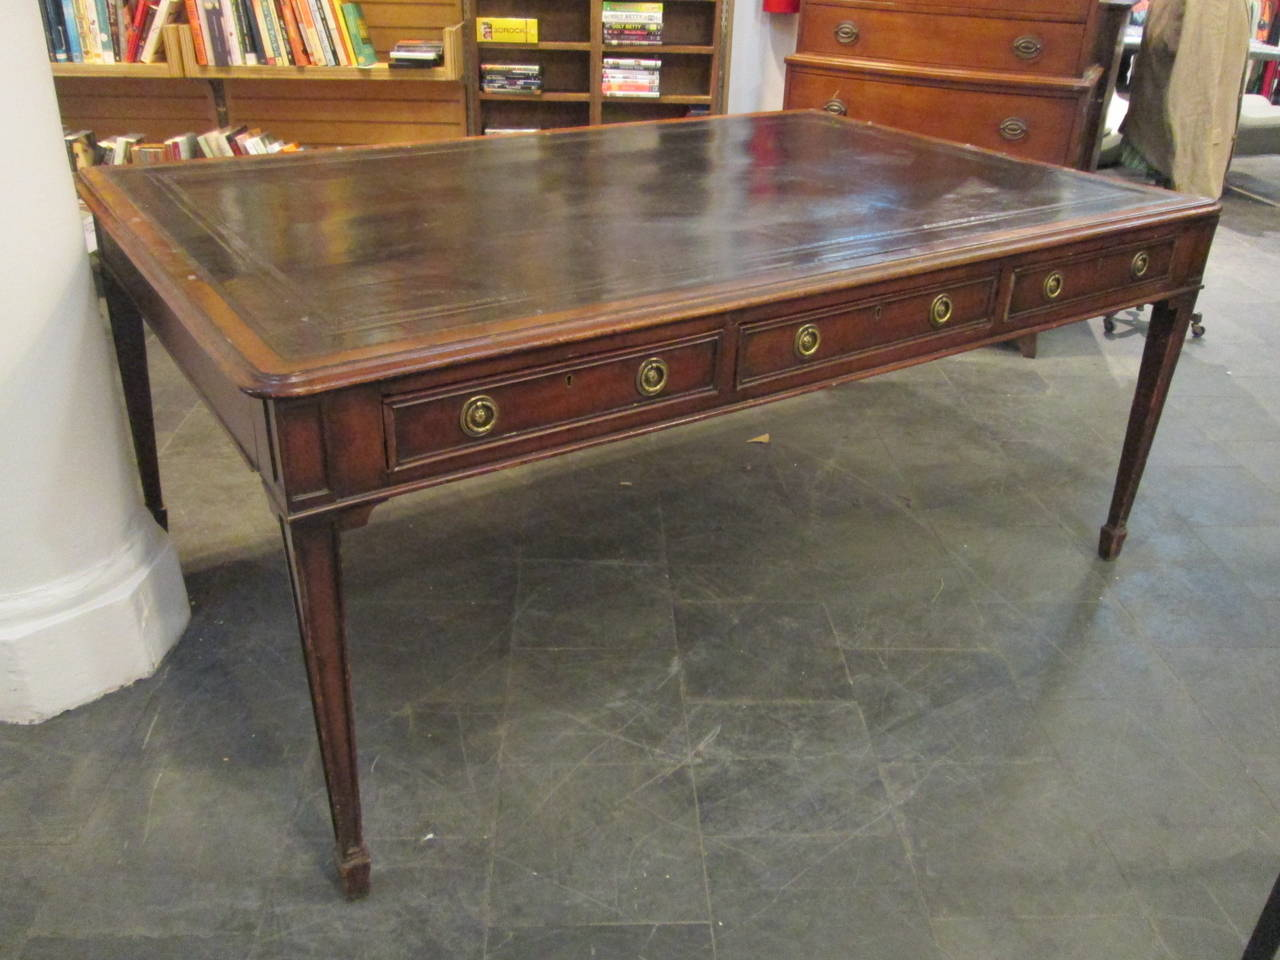 19th Century English Mahogany Leather-Top Partners Desk 2 - 19th Century English Mahogany Leather-Top Partners Desk At 1stdibs